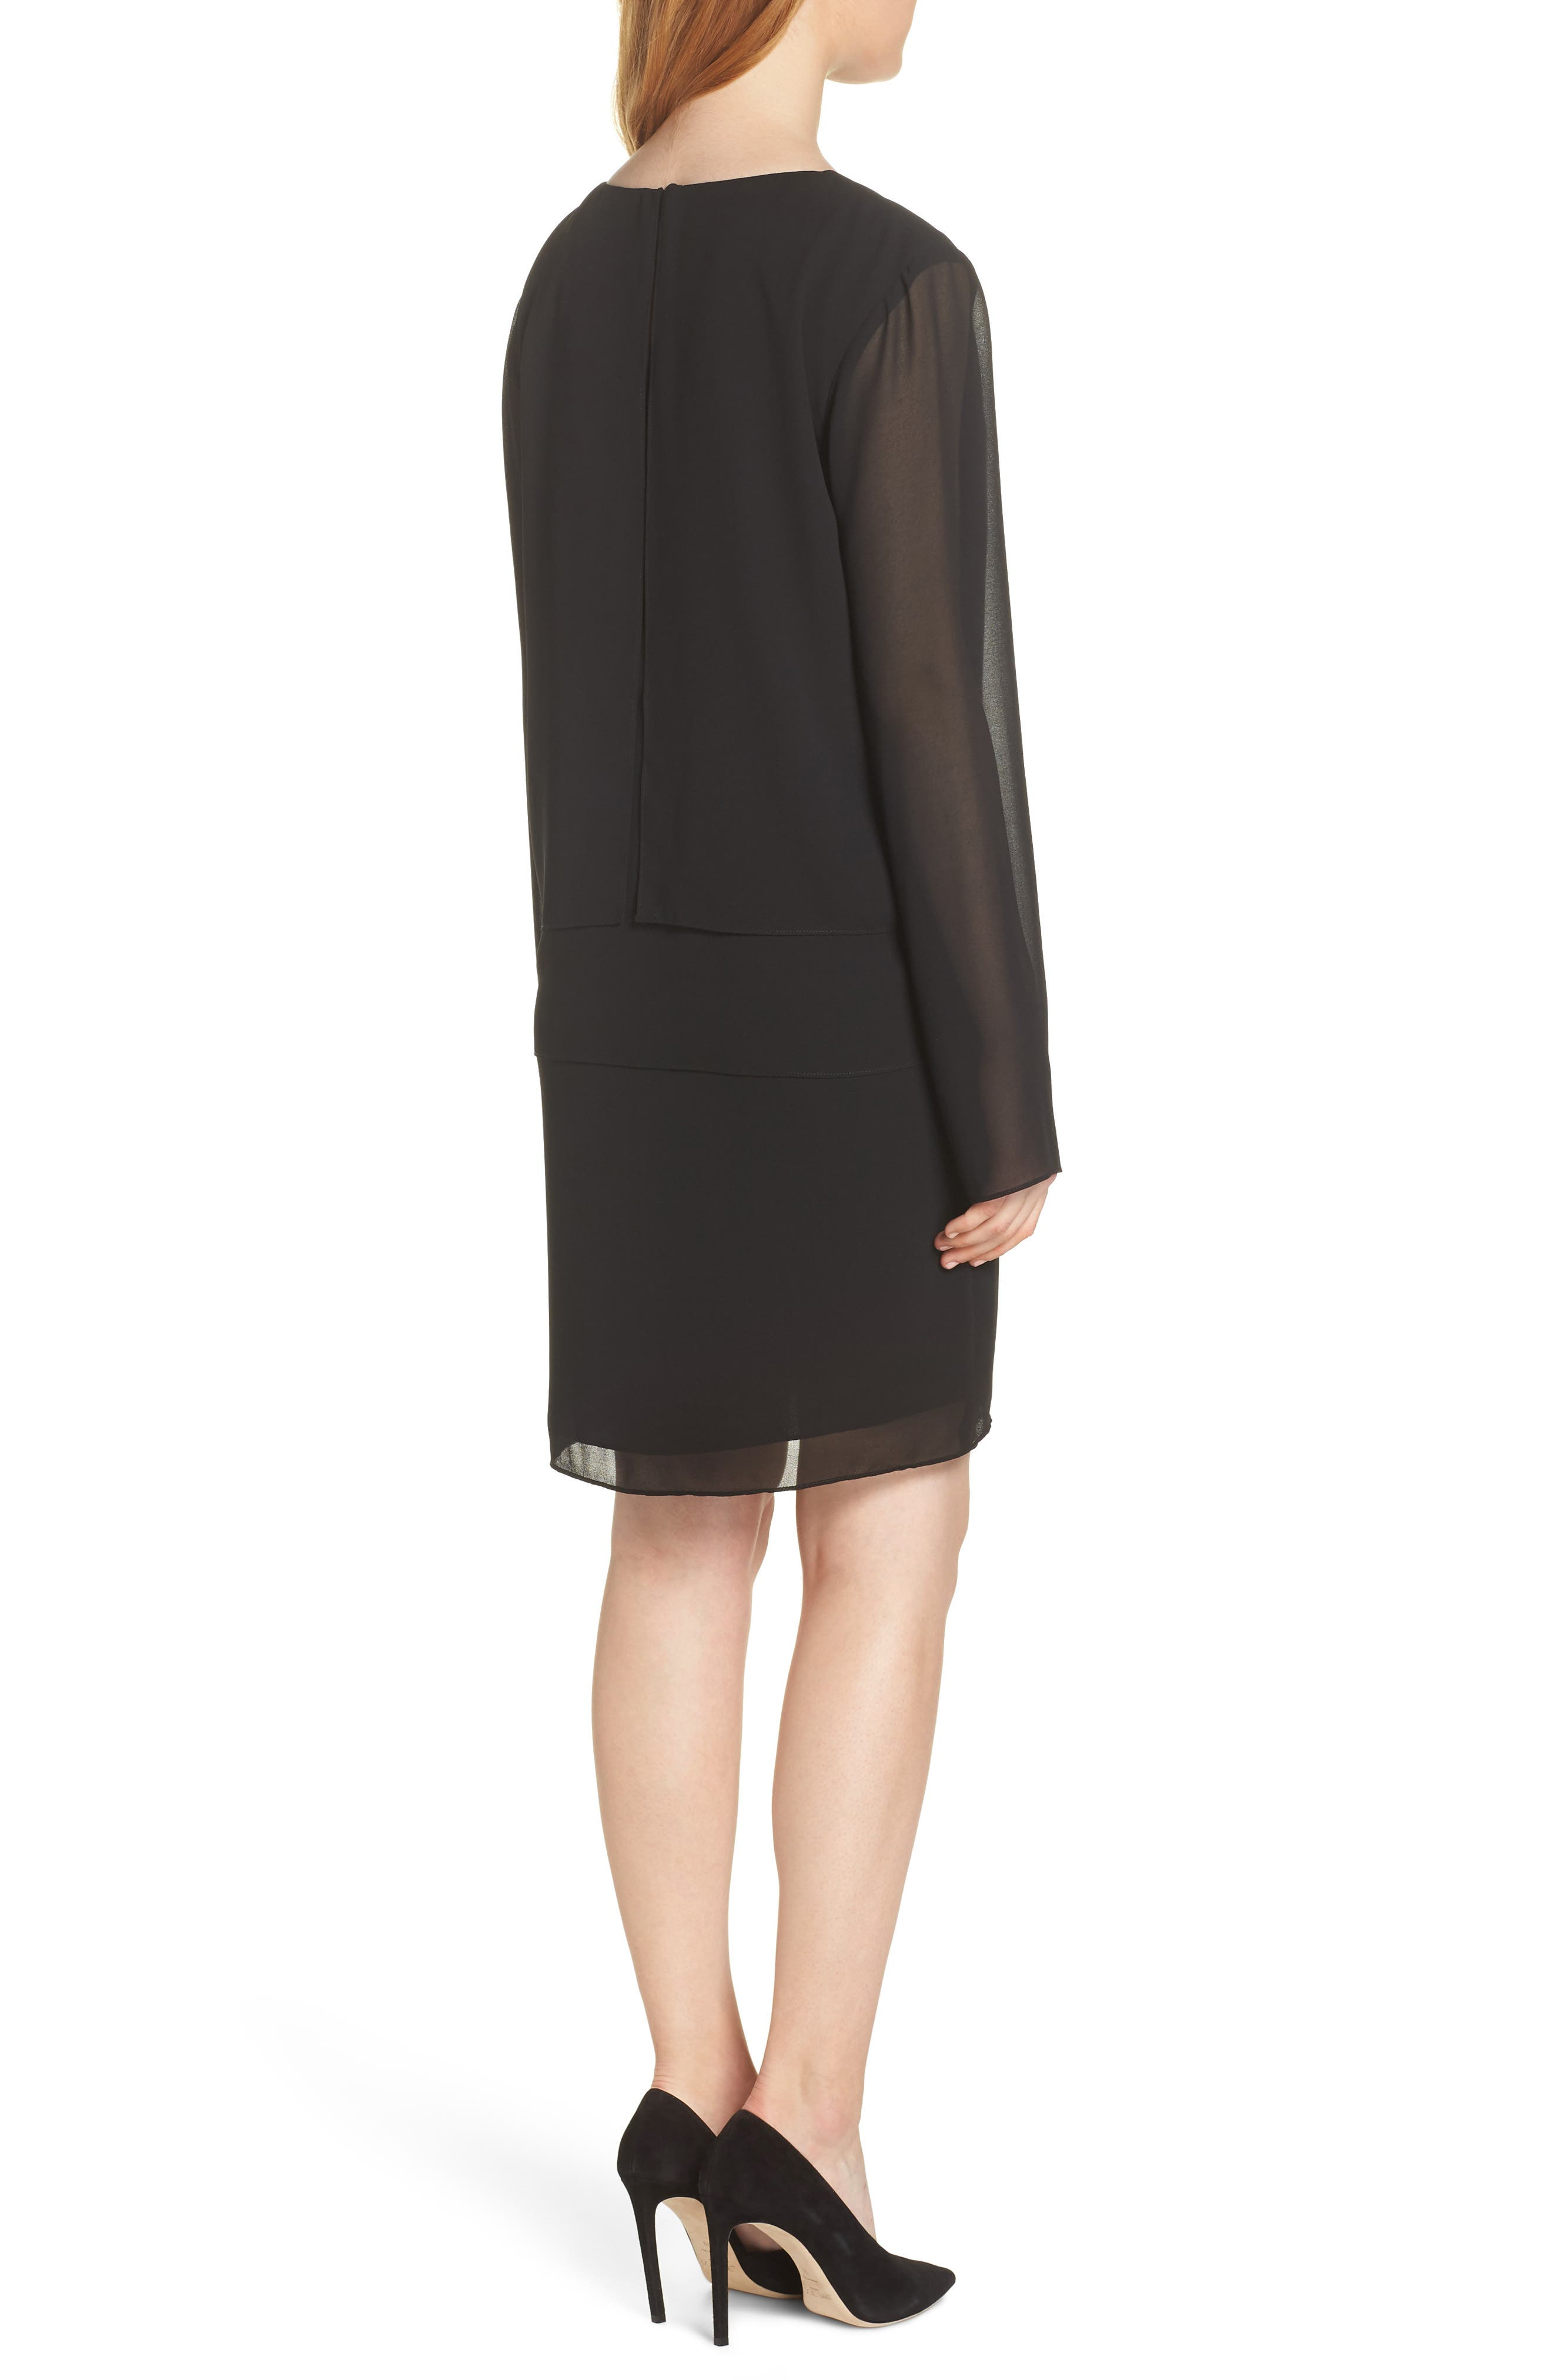 CHARLES HENRY, Layered Popover Chiffon Dress, Alternate thumbnail 2, color, 001